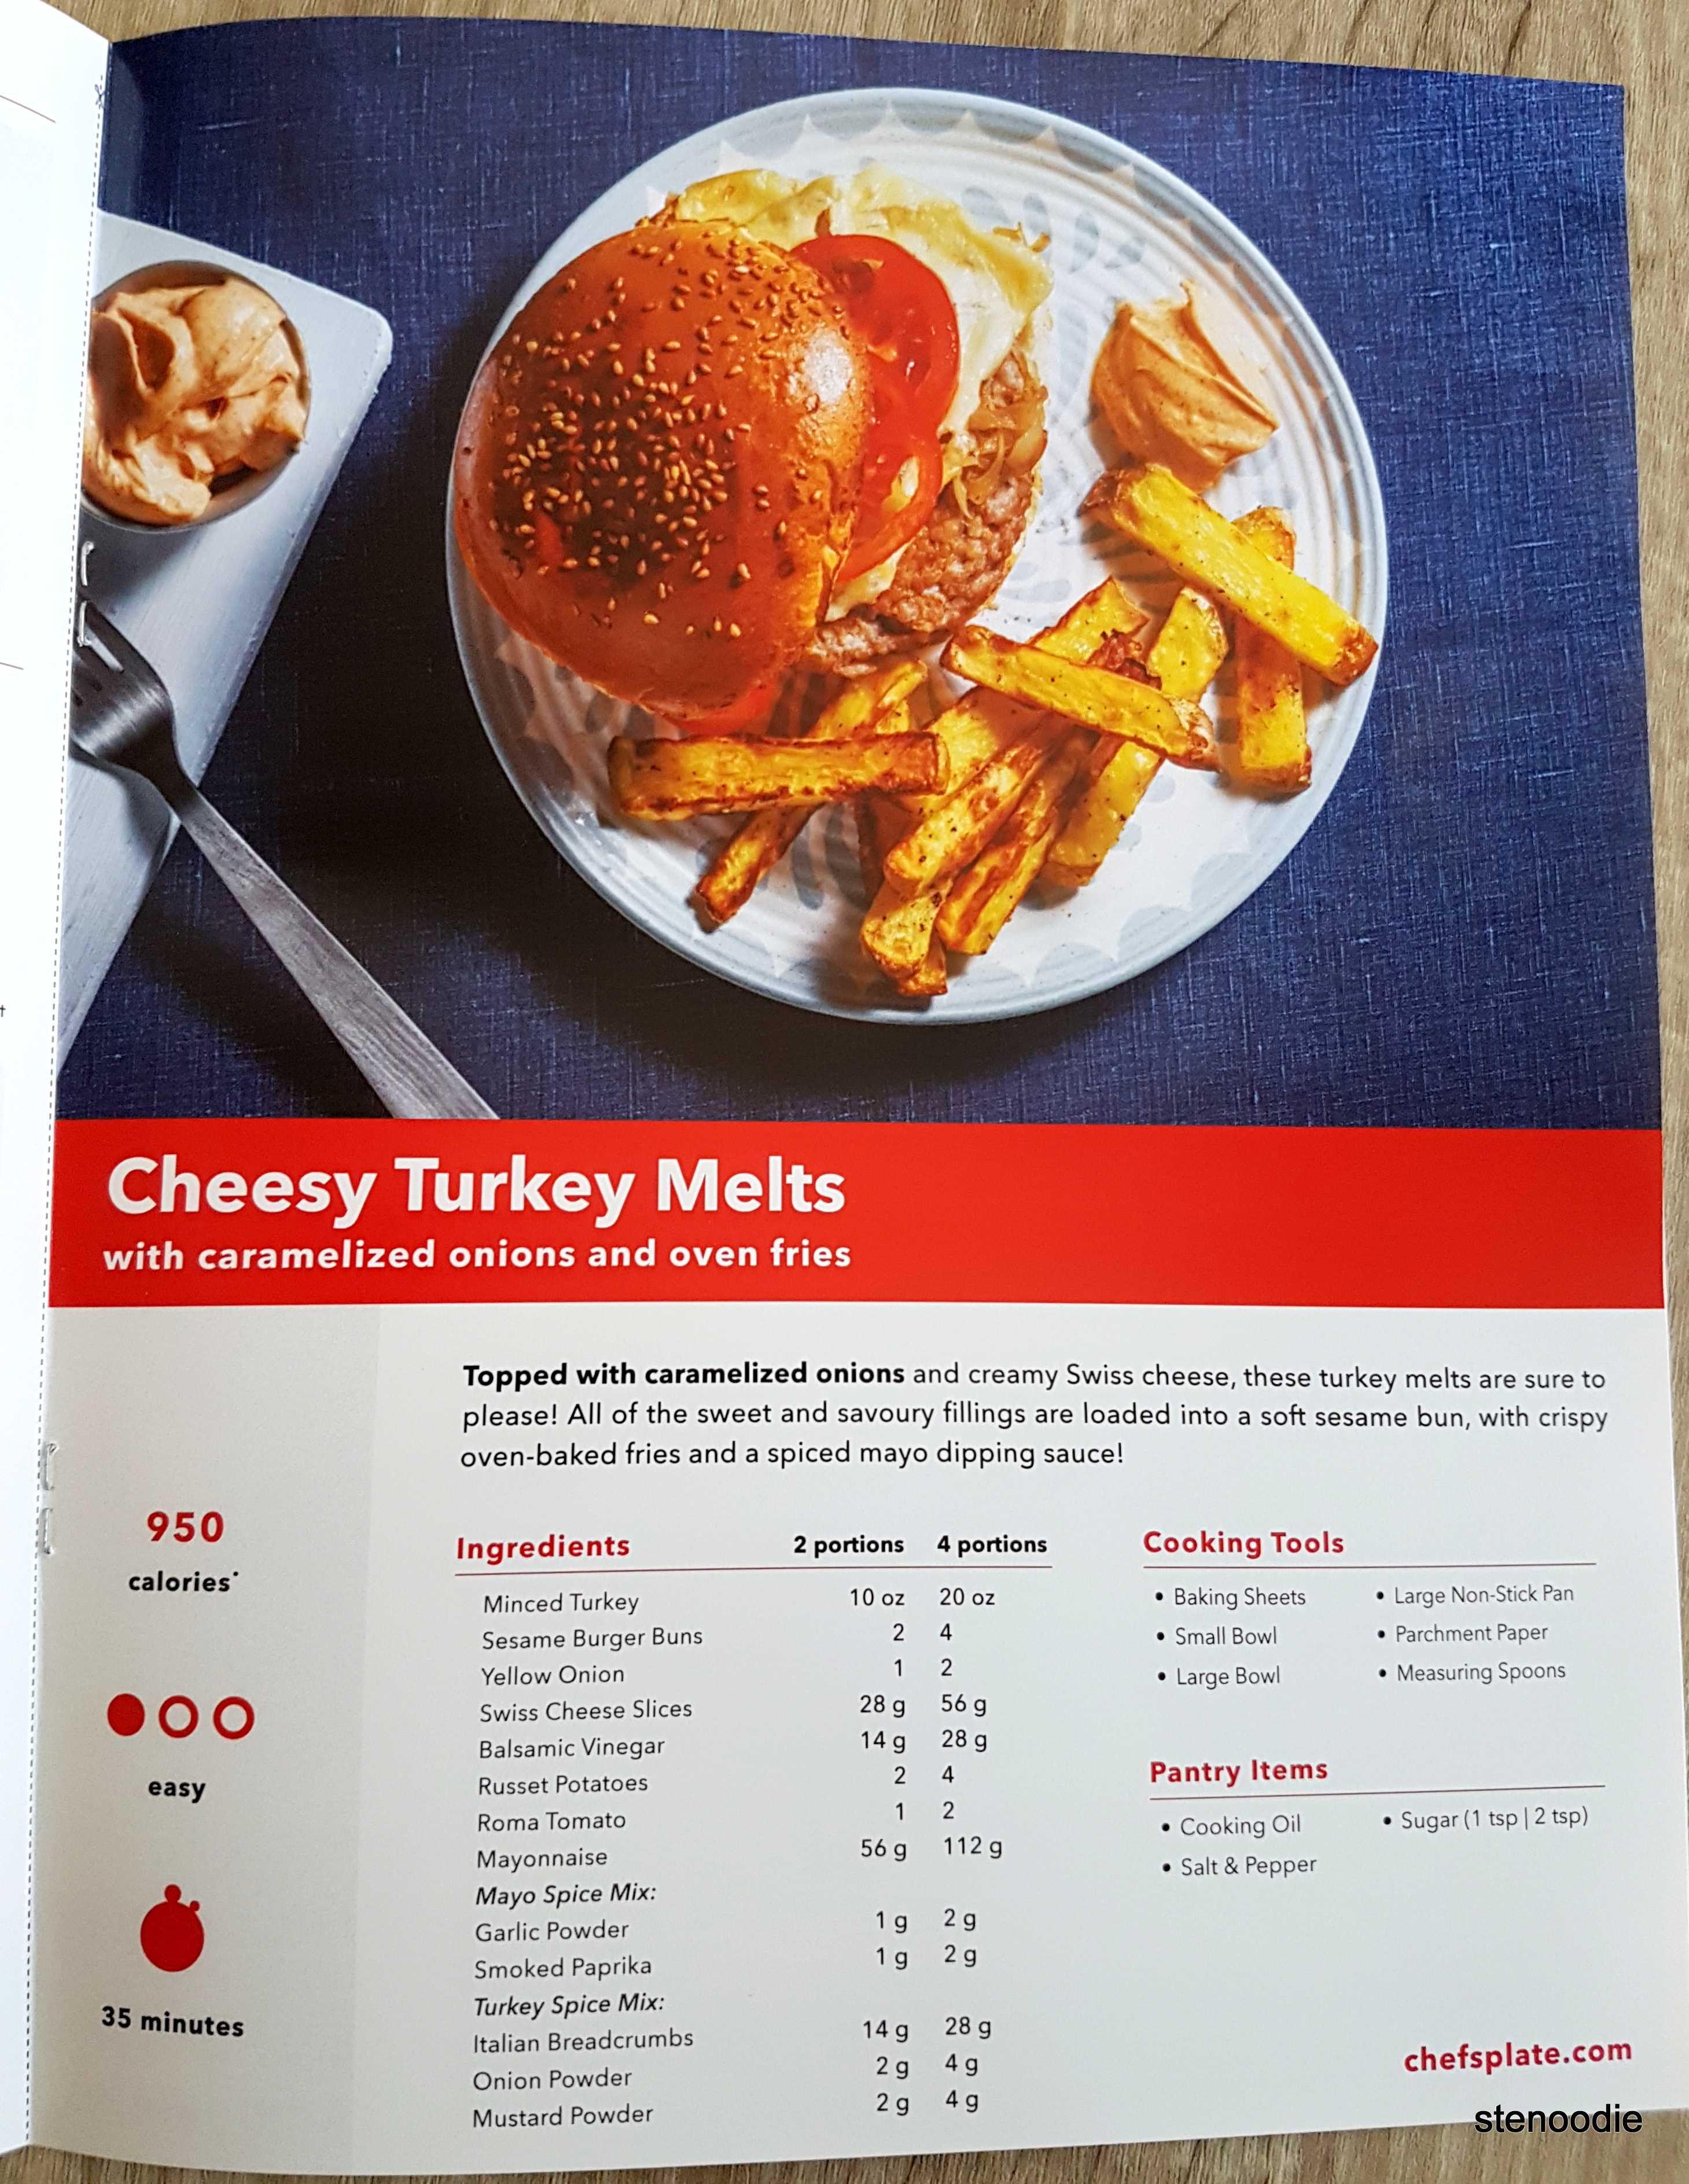 Cheesy Turkey Melts with Caramelized Onions and Oven Fries recipe card